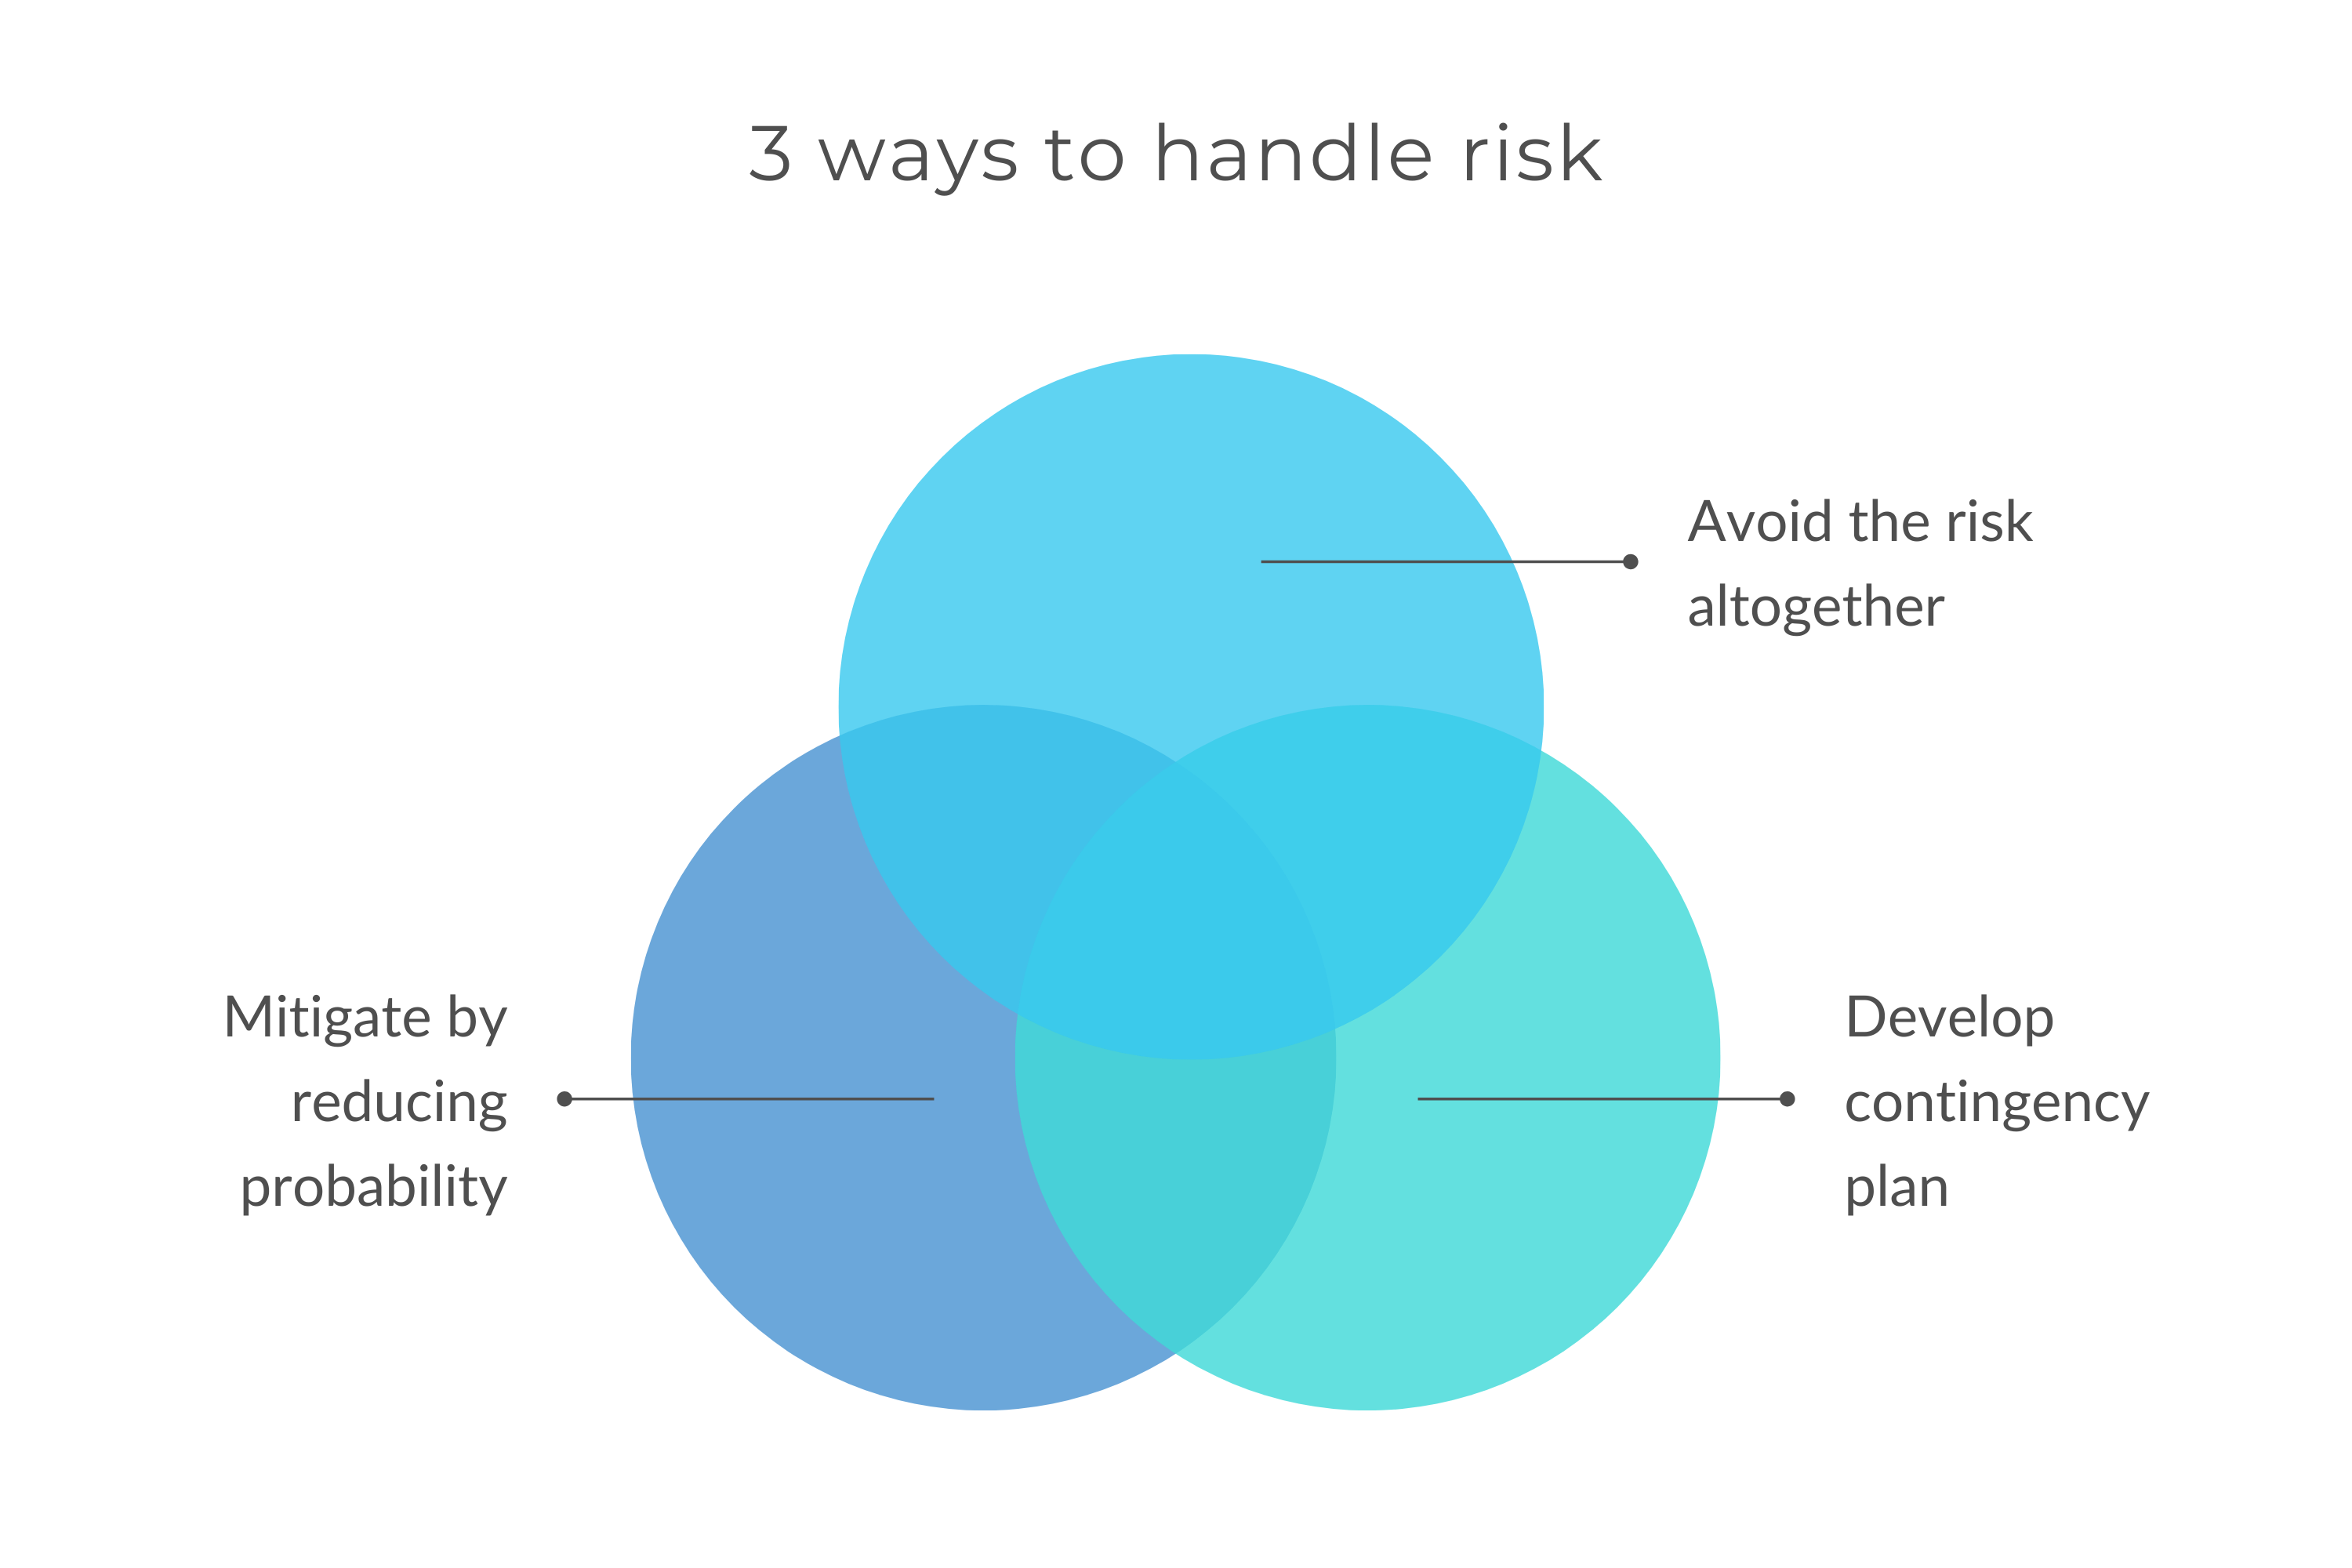 Risk management - there are 3 main ways